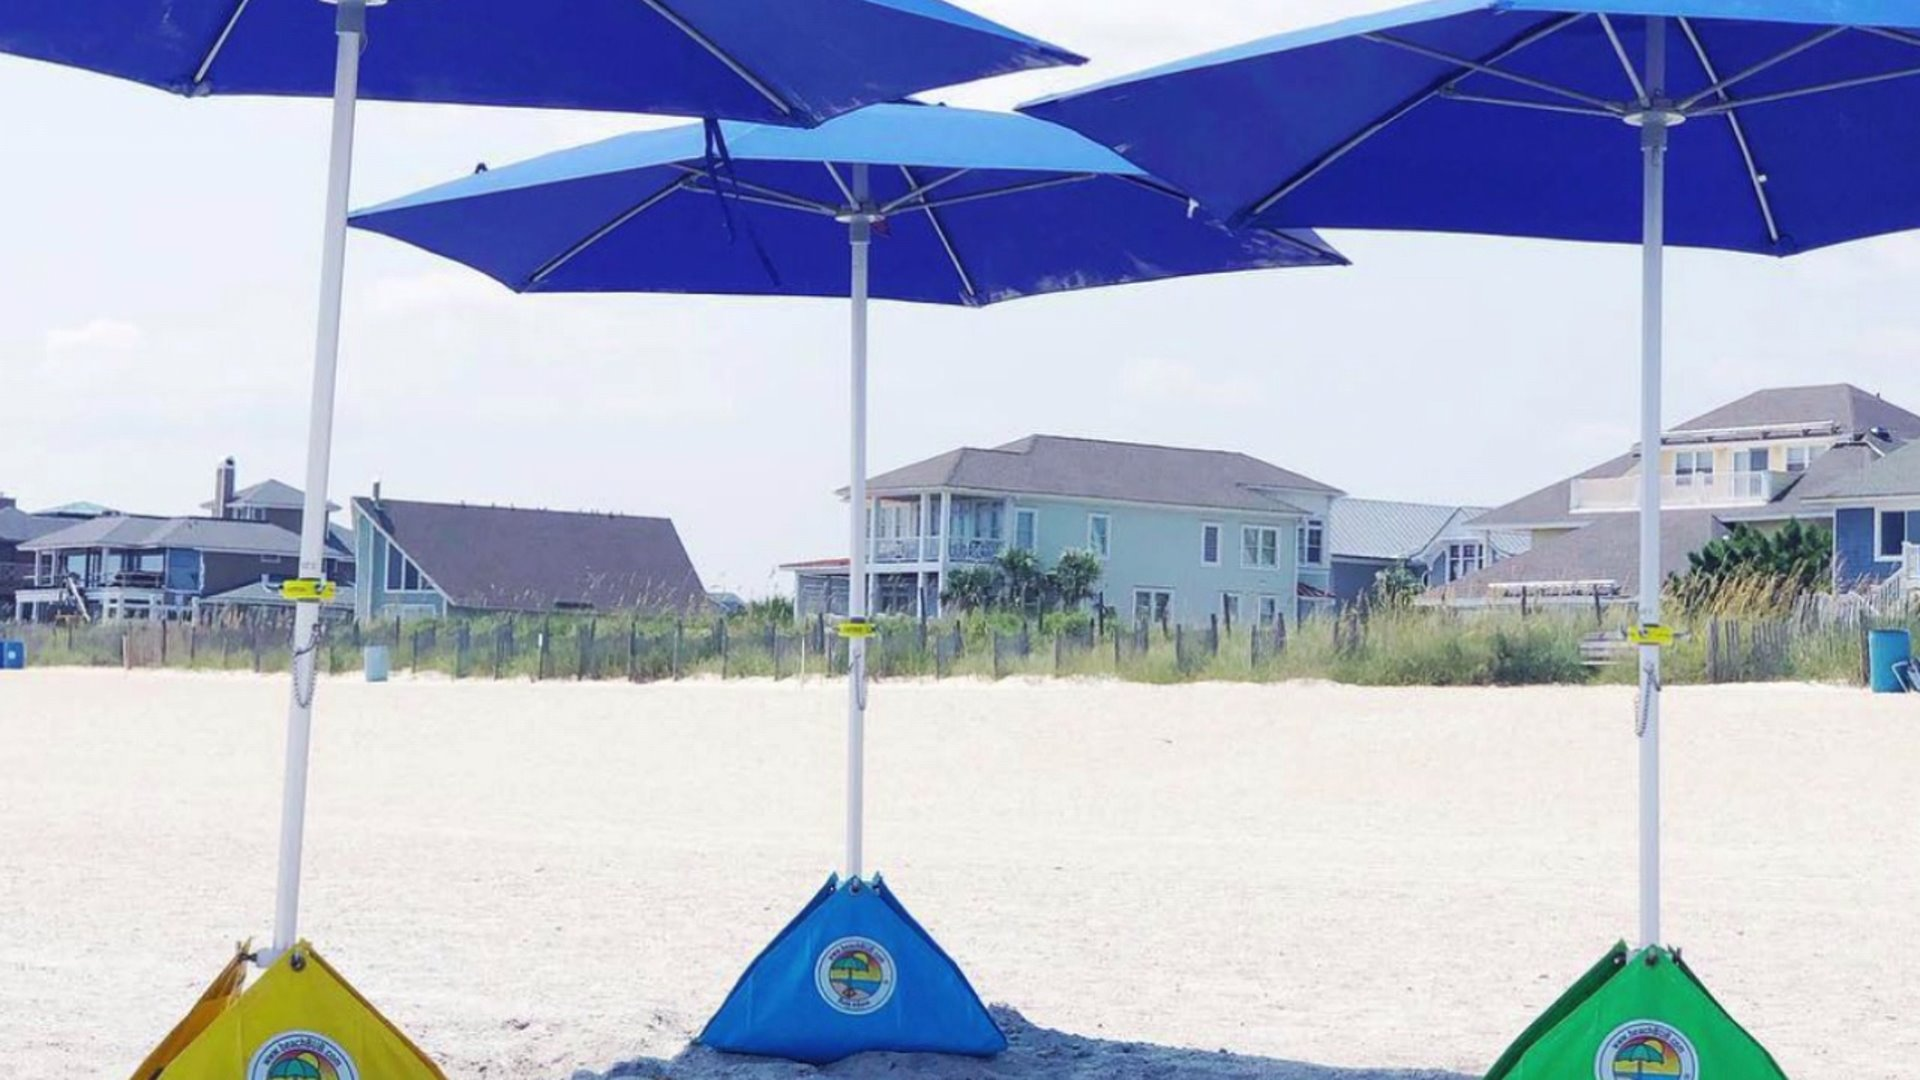 Beach Bub in Greensboro gets ready to expand as more people opt for the safer umbrella